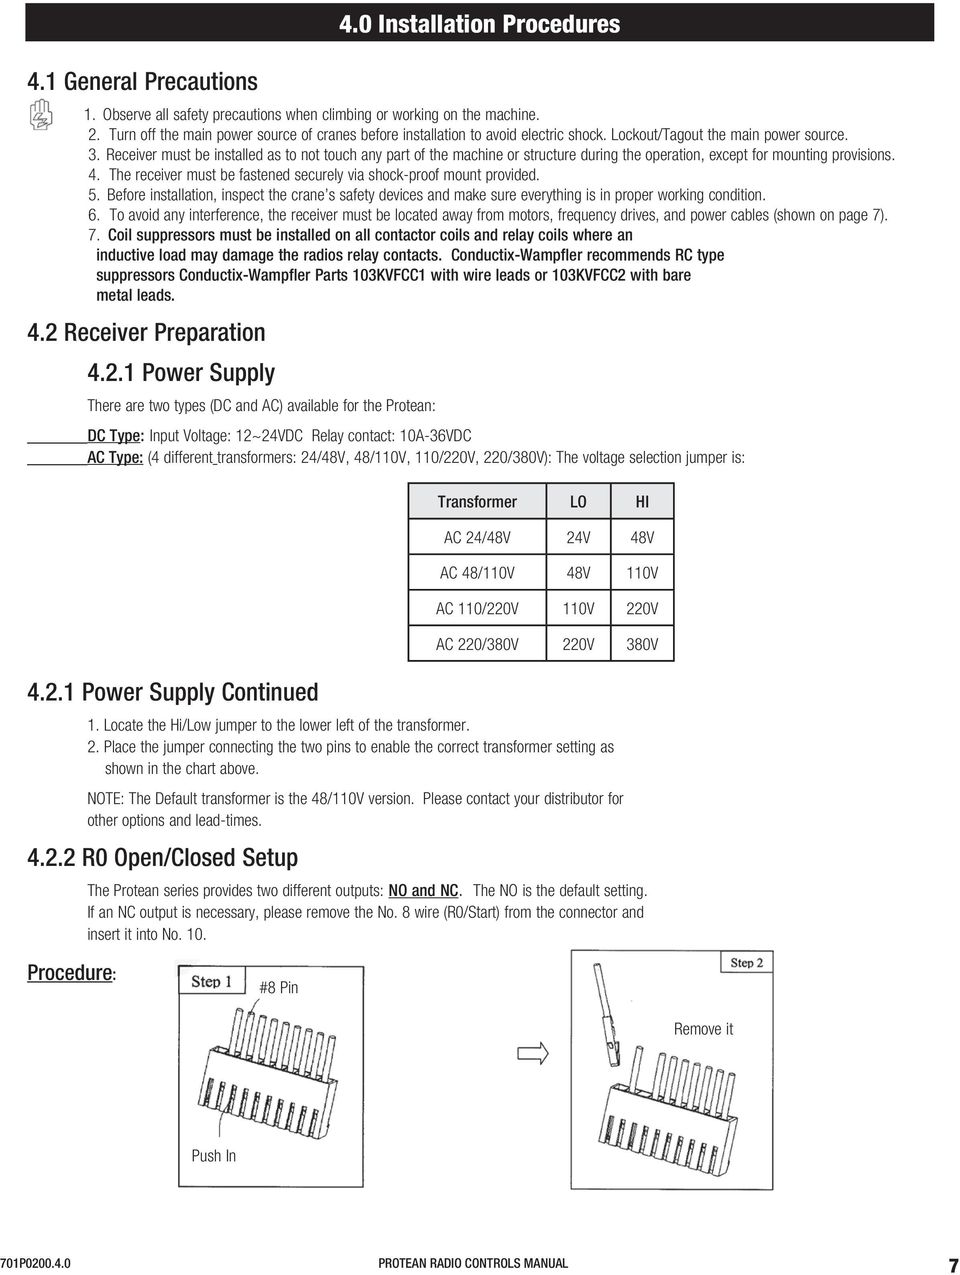 Radio Controls Manual Protean Series Pdf 8 Pin 120 Volt Relay Wiring Diagram Receiver Must Be Installed As To Not Touch Any Part Of The Machine Or Structure During 40 Installation